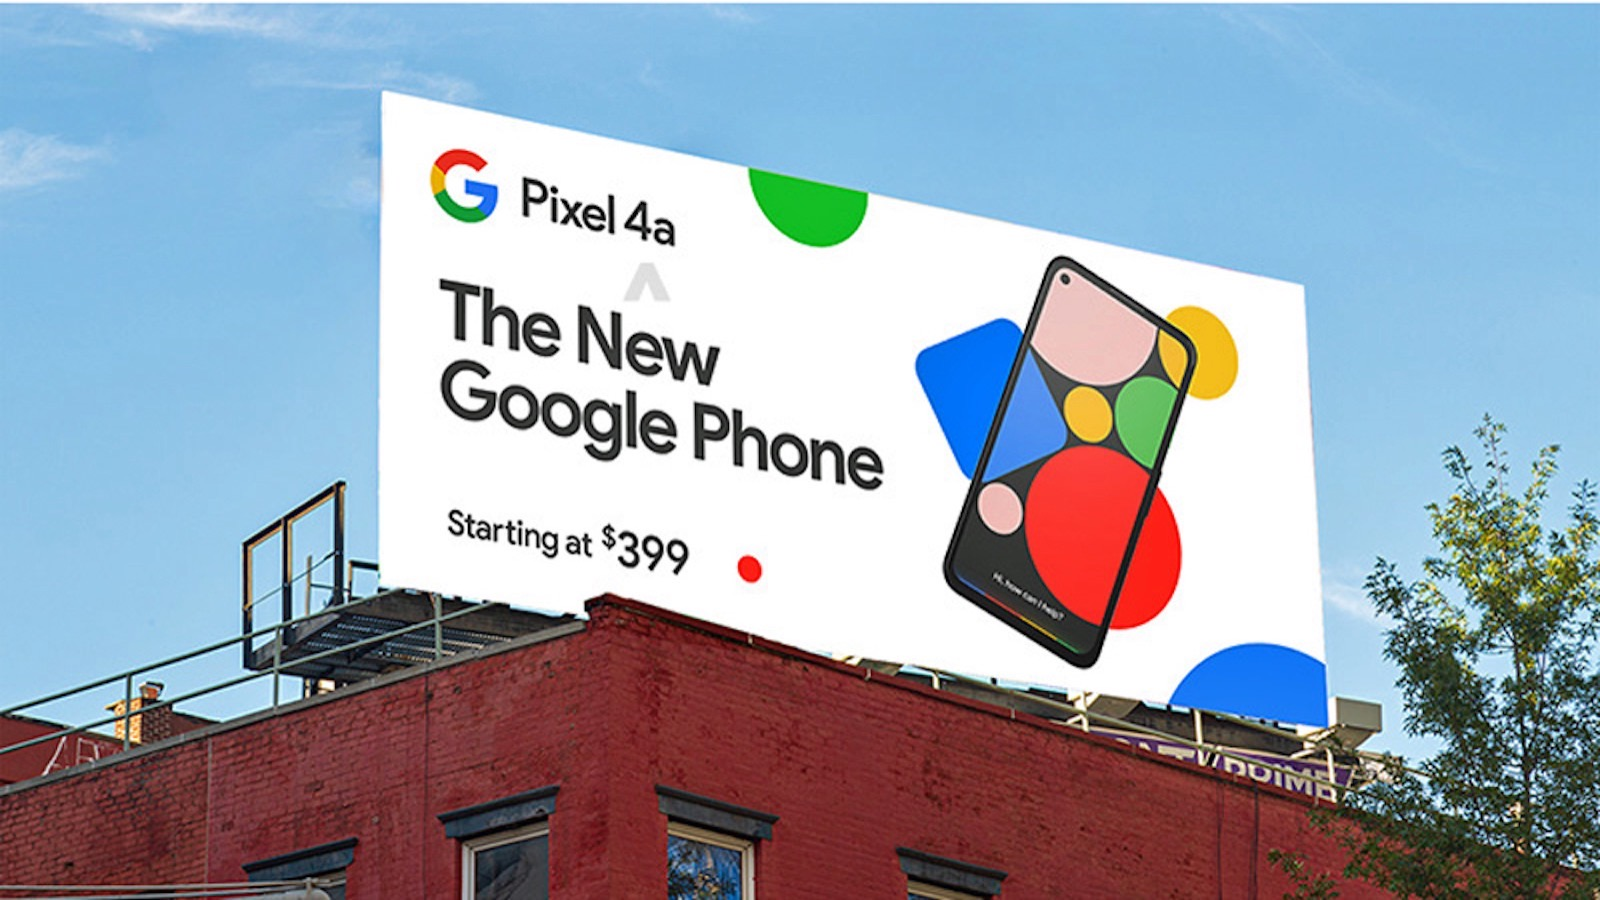 Pixel4a price is 399 2